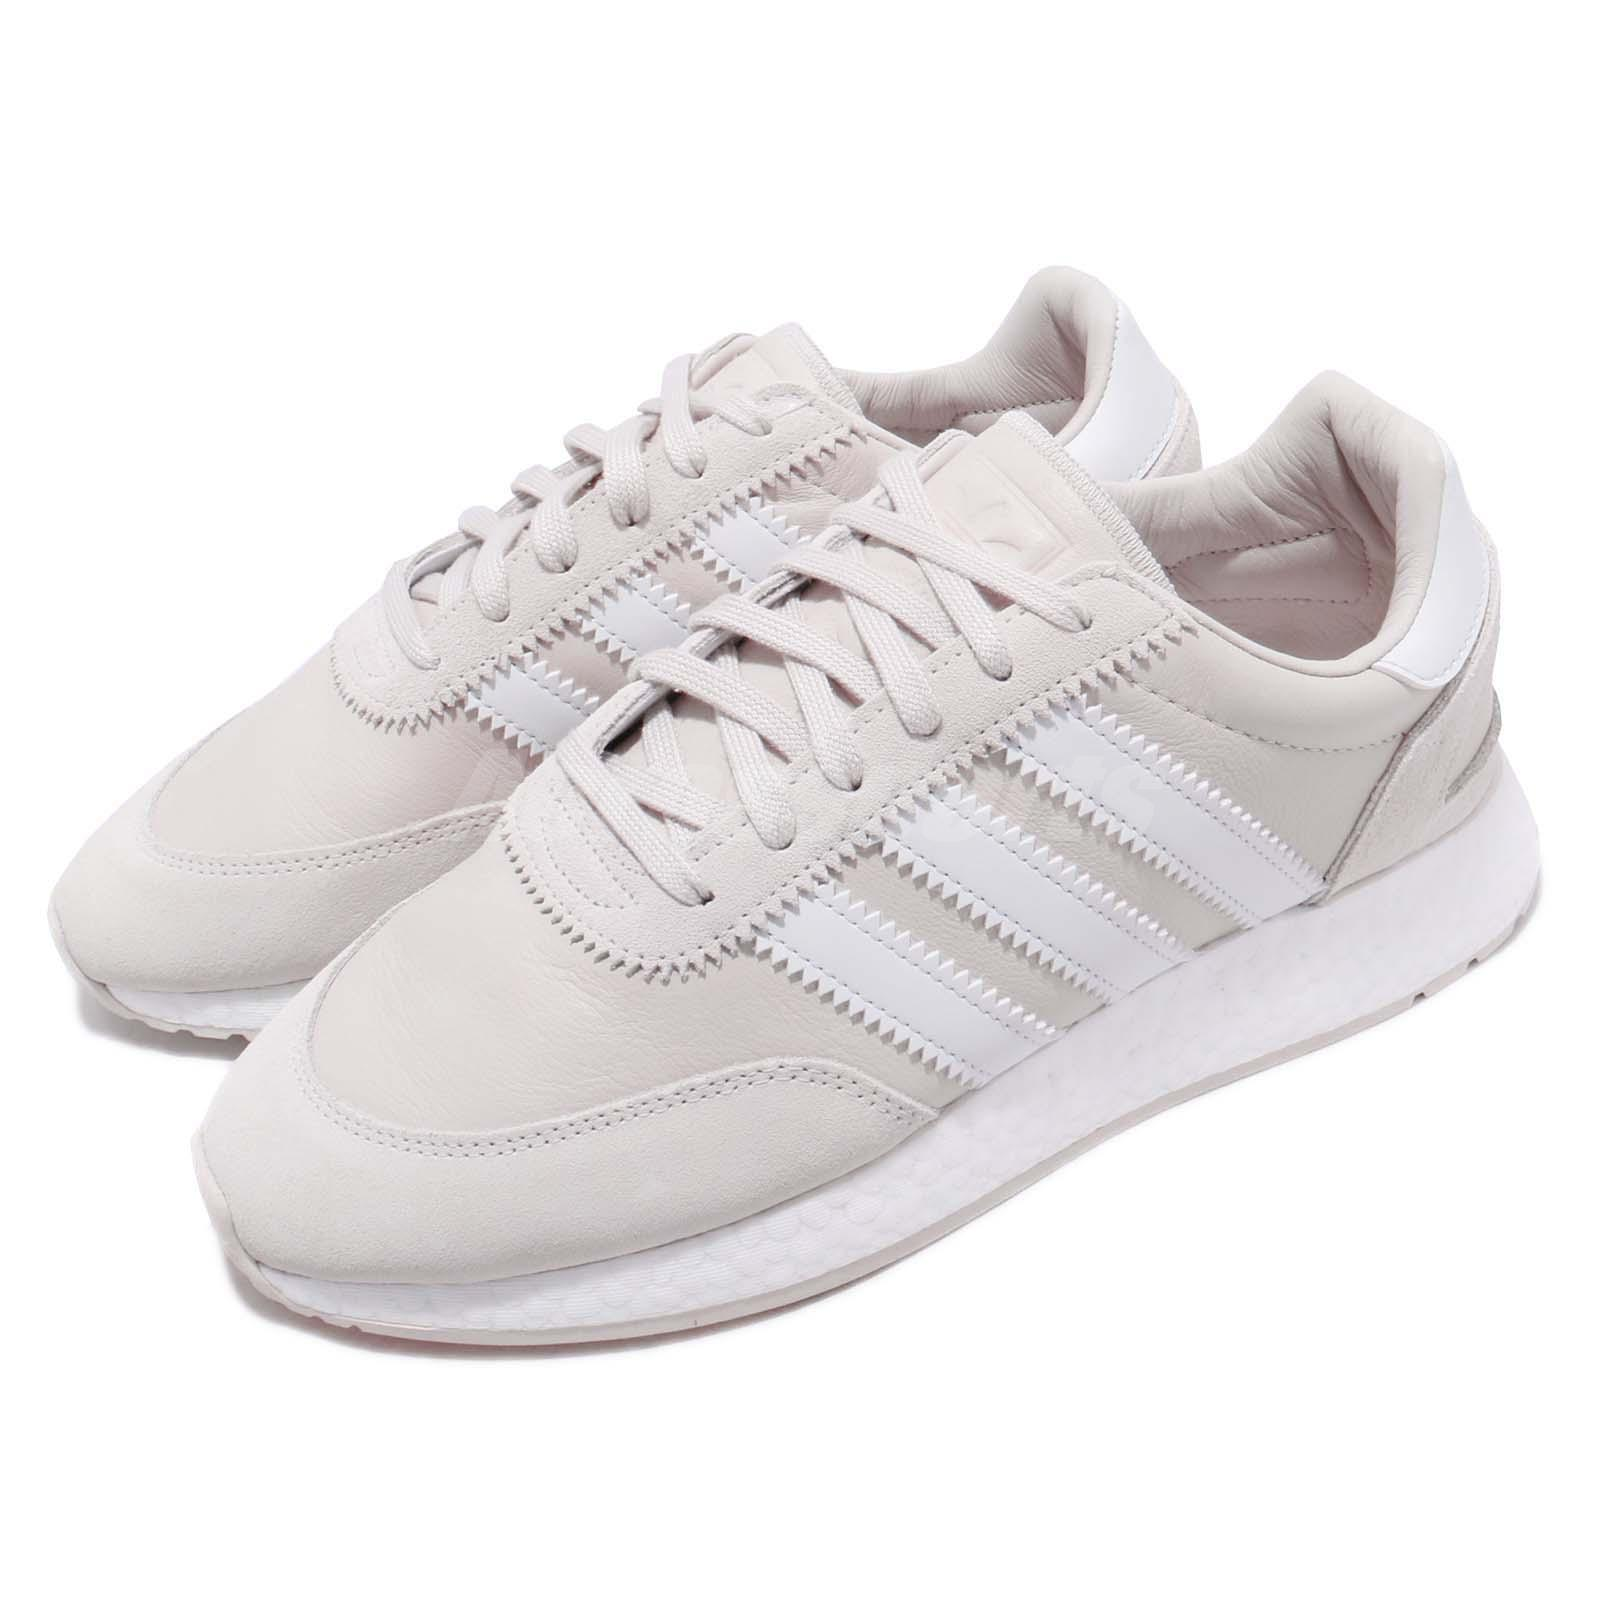 e6706108850 Details about adidas Originals I-5923 Iniki Runner Boost Raw White Men  Running Shoes BD7799